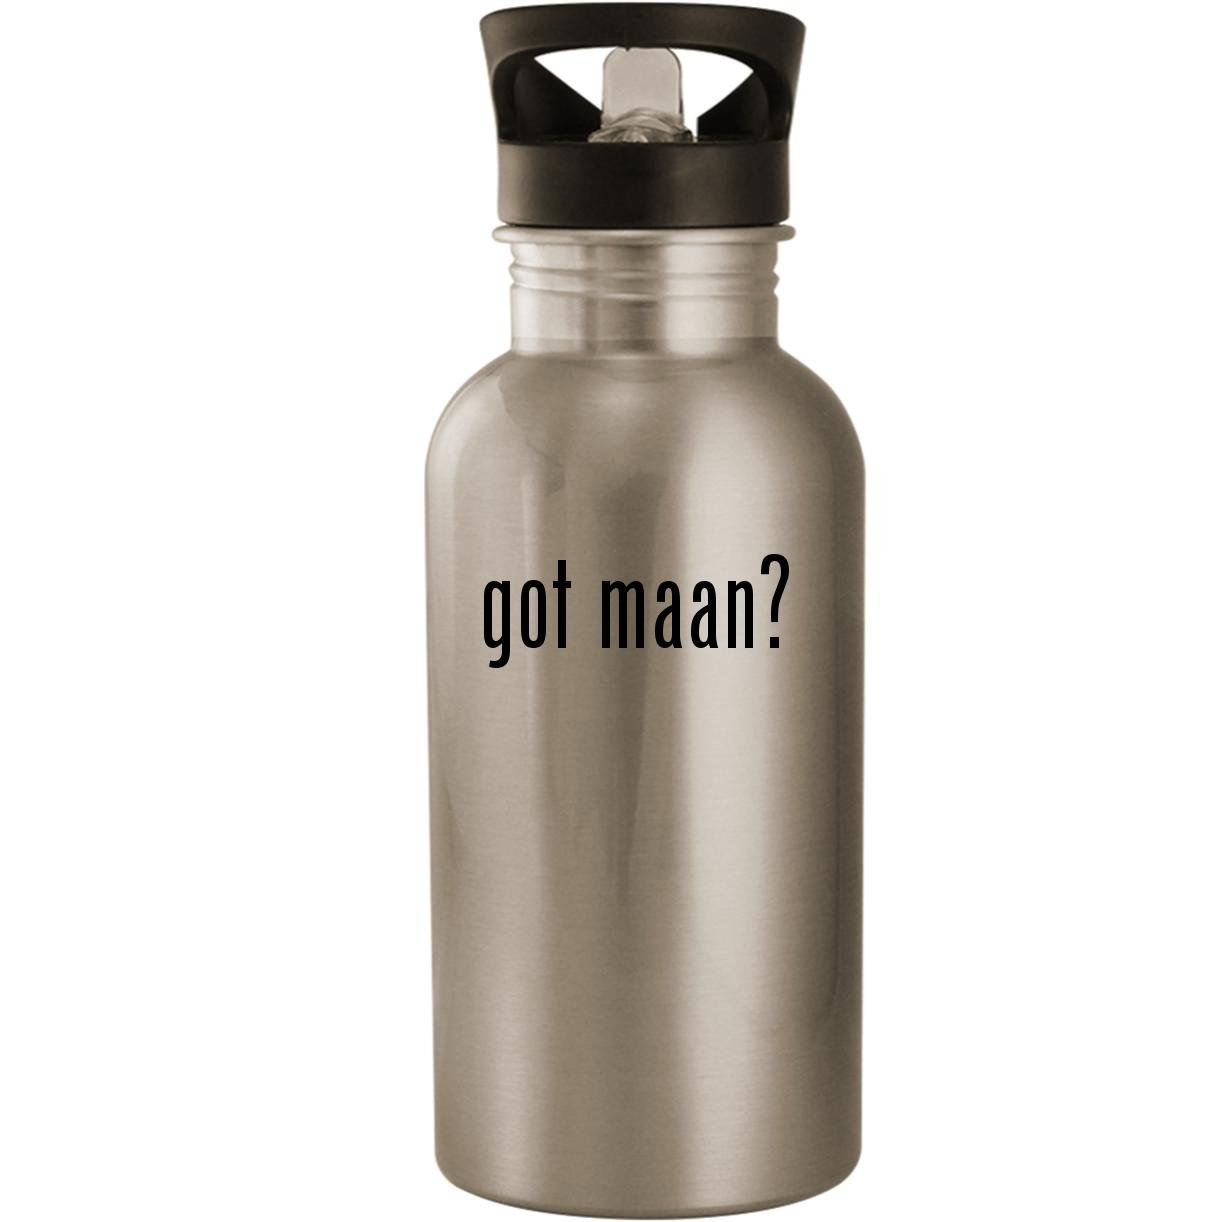 got maan? - Stainless Steel 20oz Road Ready Water Bottle, Silver by Molandra Products